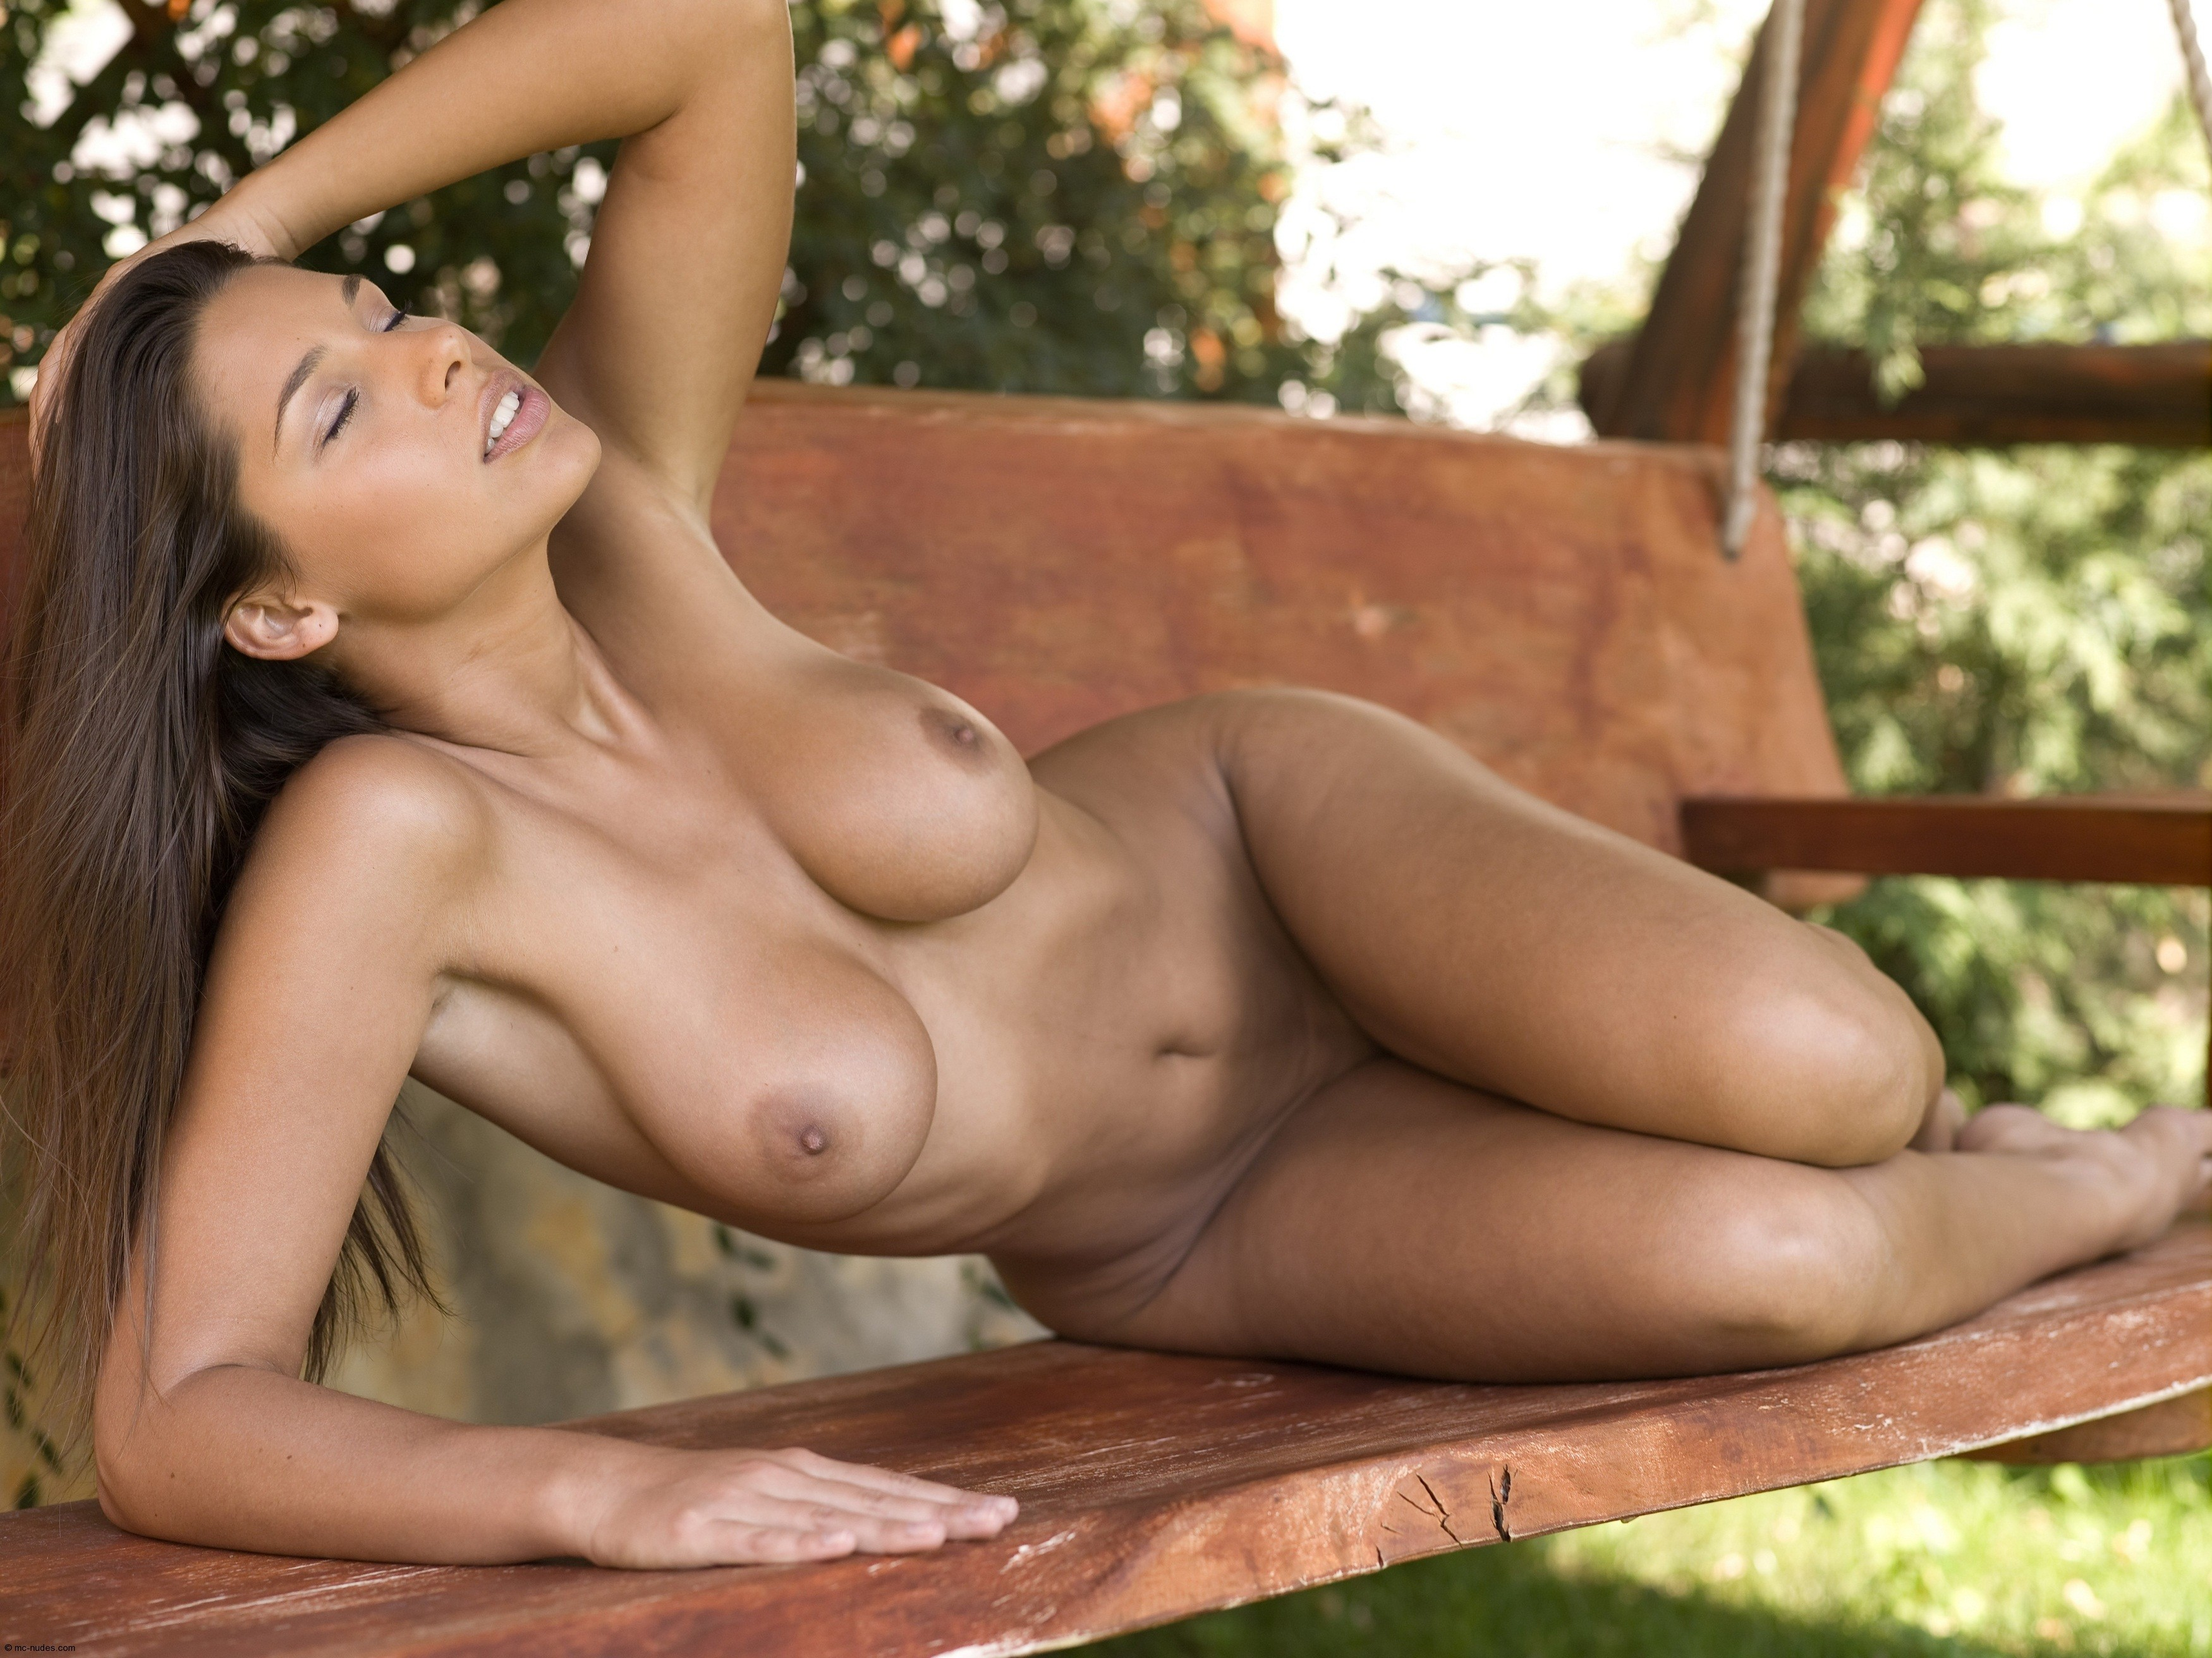 Beauty tanned sex, plump breasts fucking